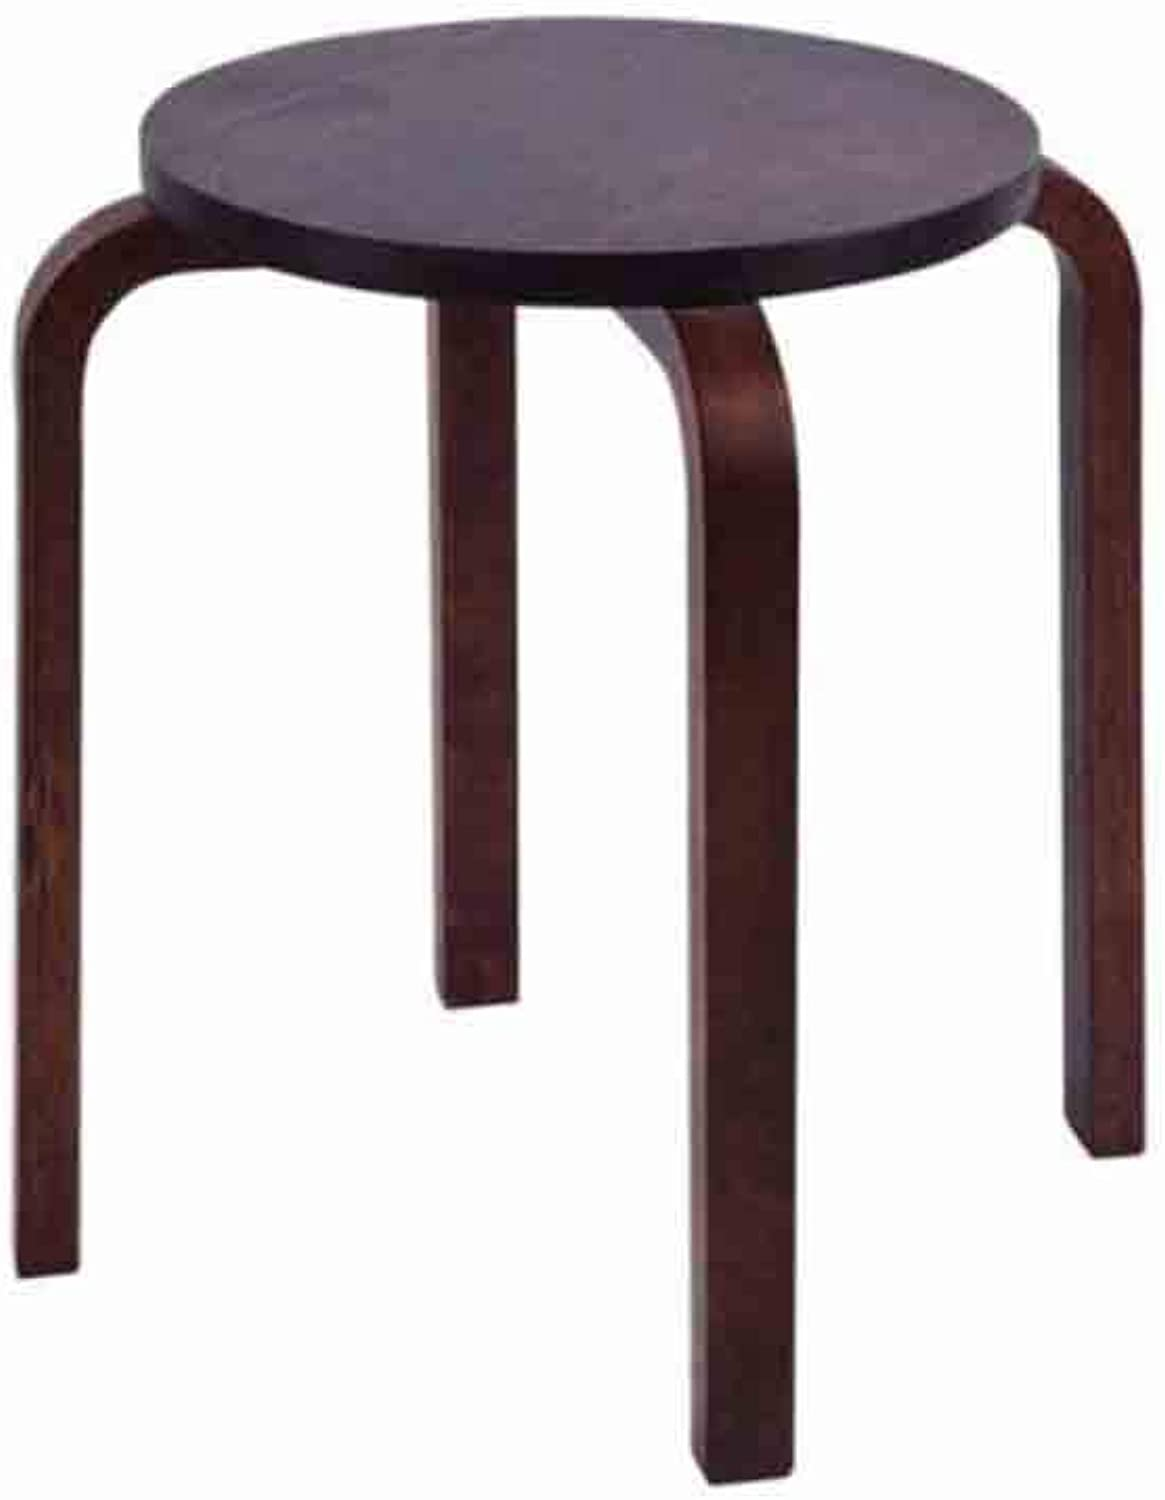 YCSD Solid Wood Stool, Household Stackable Dining Table Stool, Simple Small Bench, Environmentally Friendly Water-Based Paint (color   Coffee color)